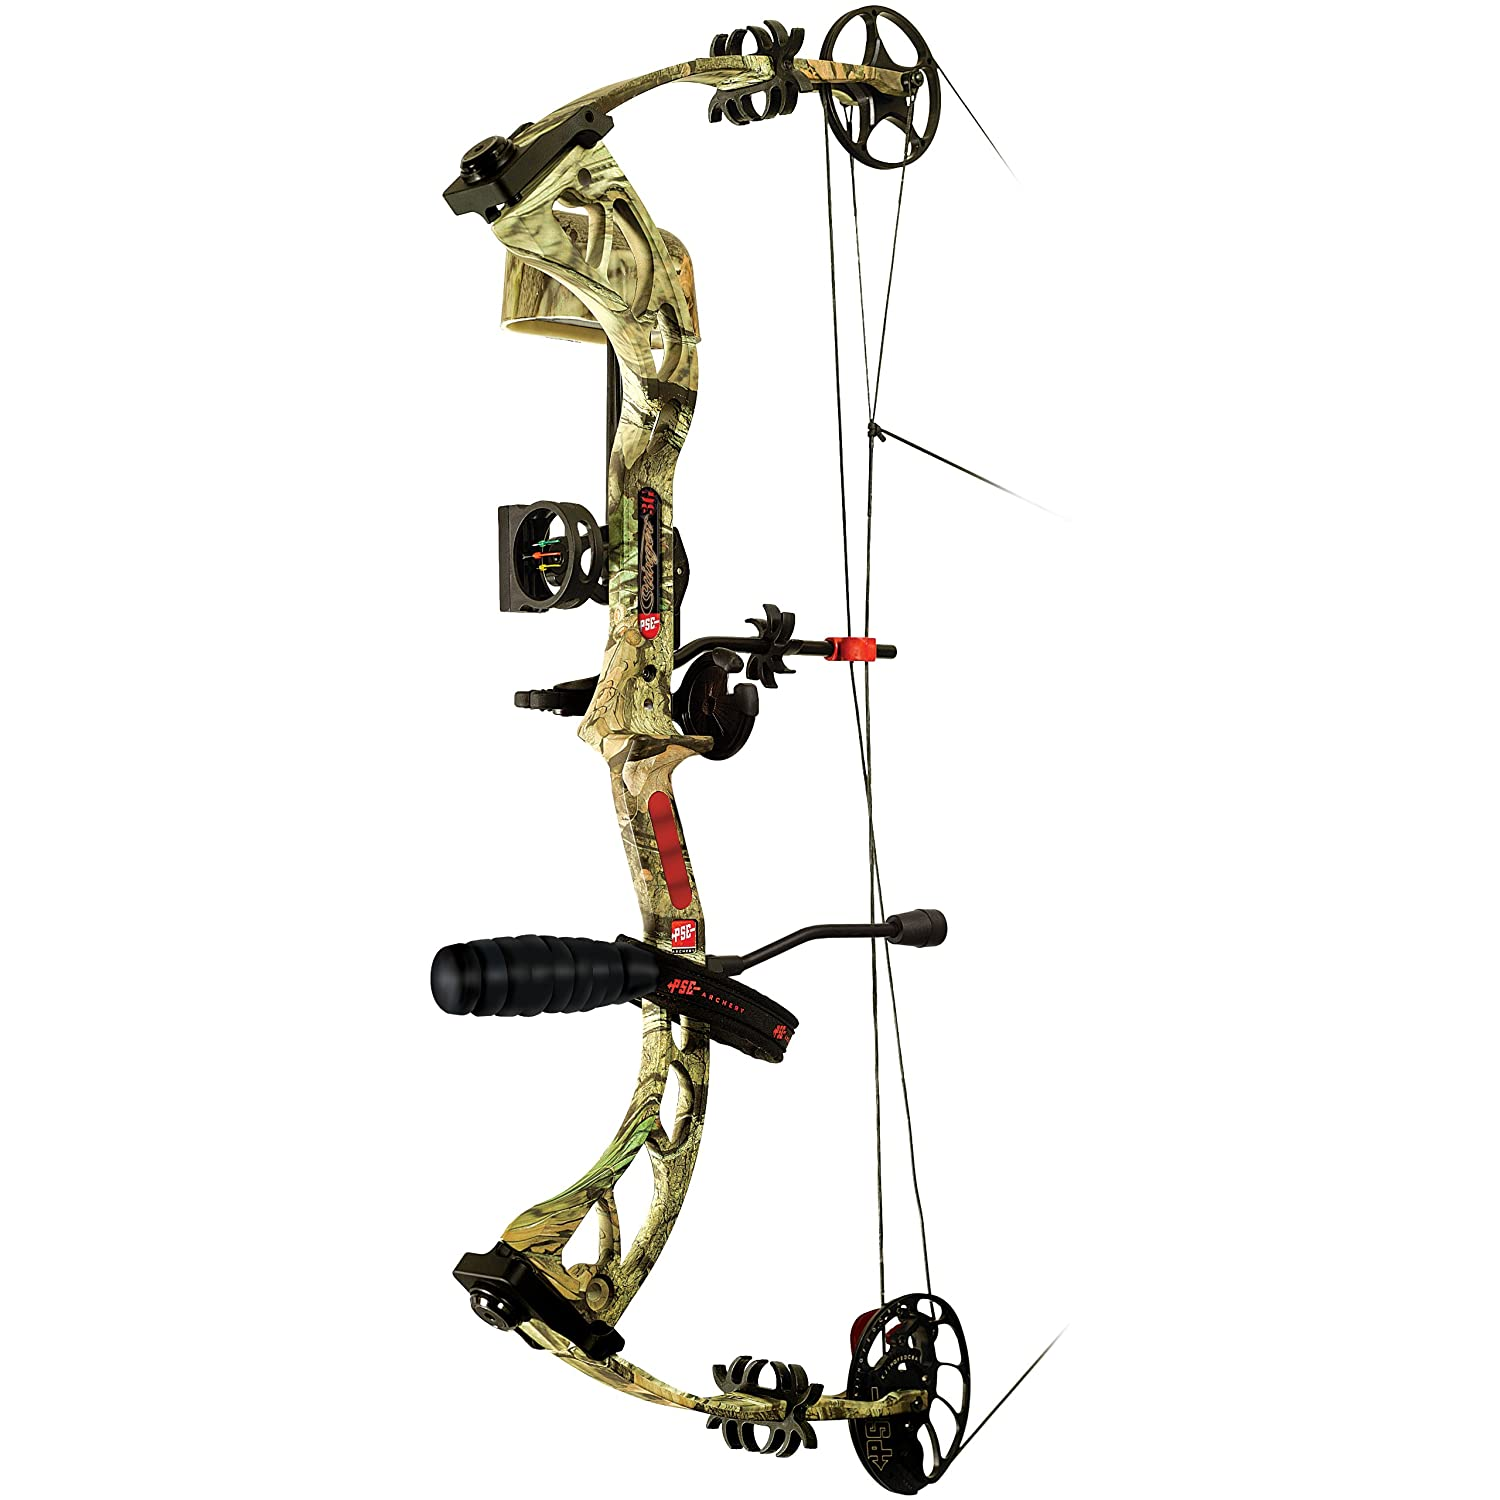 81Fsq3zXa9L. SL1500  What is the Best Compound Bow to buy? Here is the Best Guide